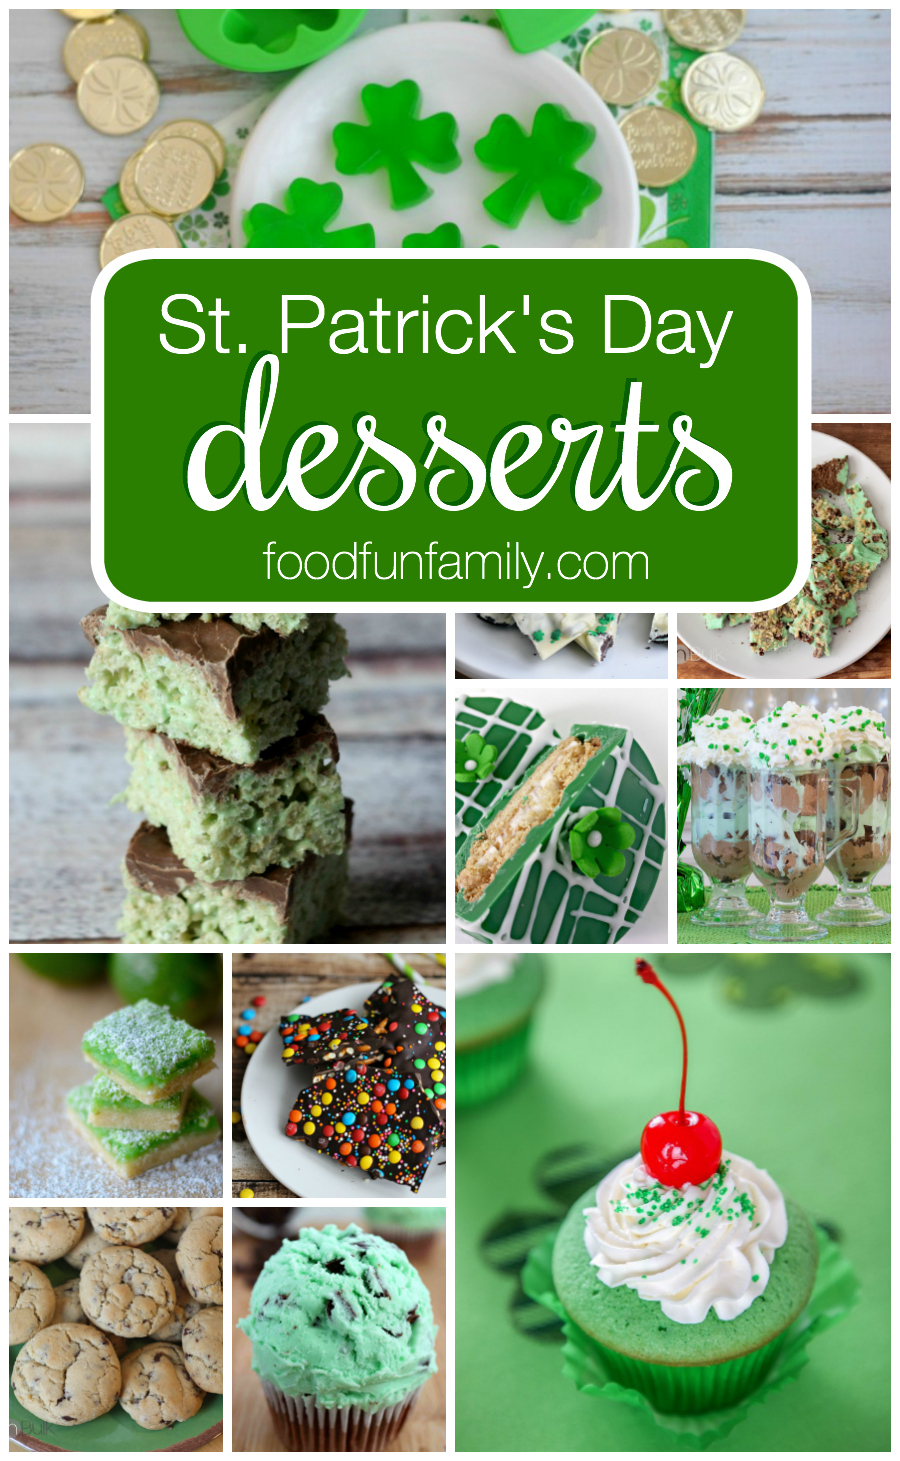 St. Patrick's Day Desserts Recipe Round Up - everything from mint chocolate chip cookies to leprechaun bark to shamrock shake cupcakes and more!